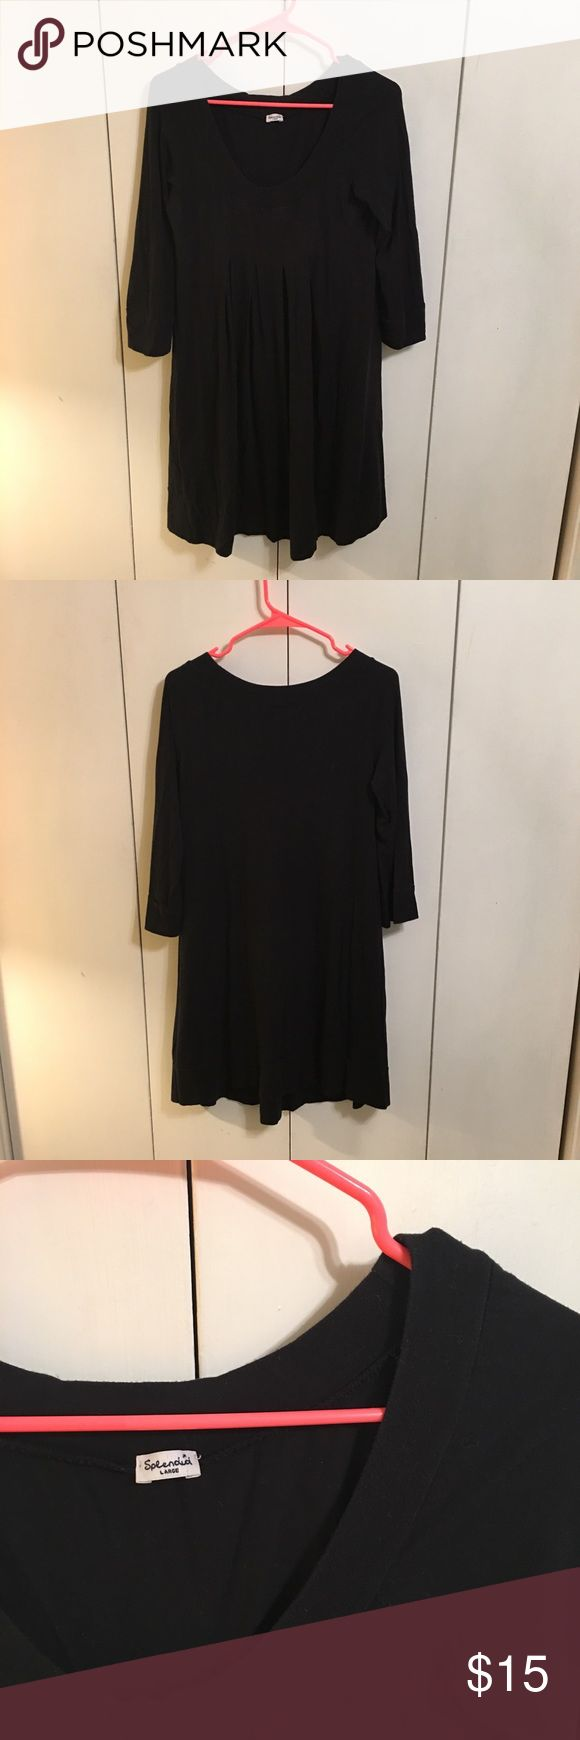 🍷 Black Tunic Dress Long sleeve black tunic dress with pleating under the best. Cuff of sleeves and hems have seams, dress is super comfortable and just needs some great patterned leggings! Splendid Dresses Long Sleeve